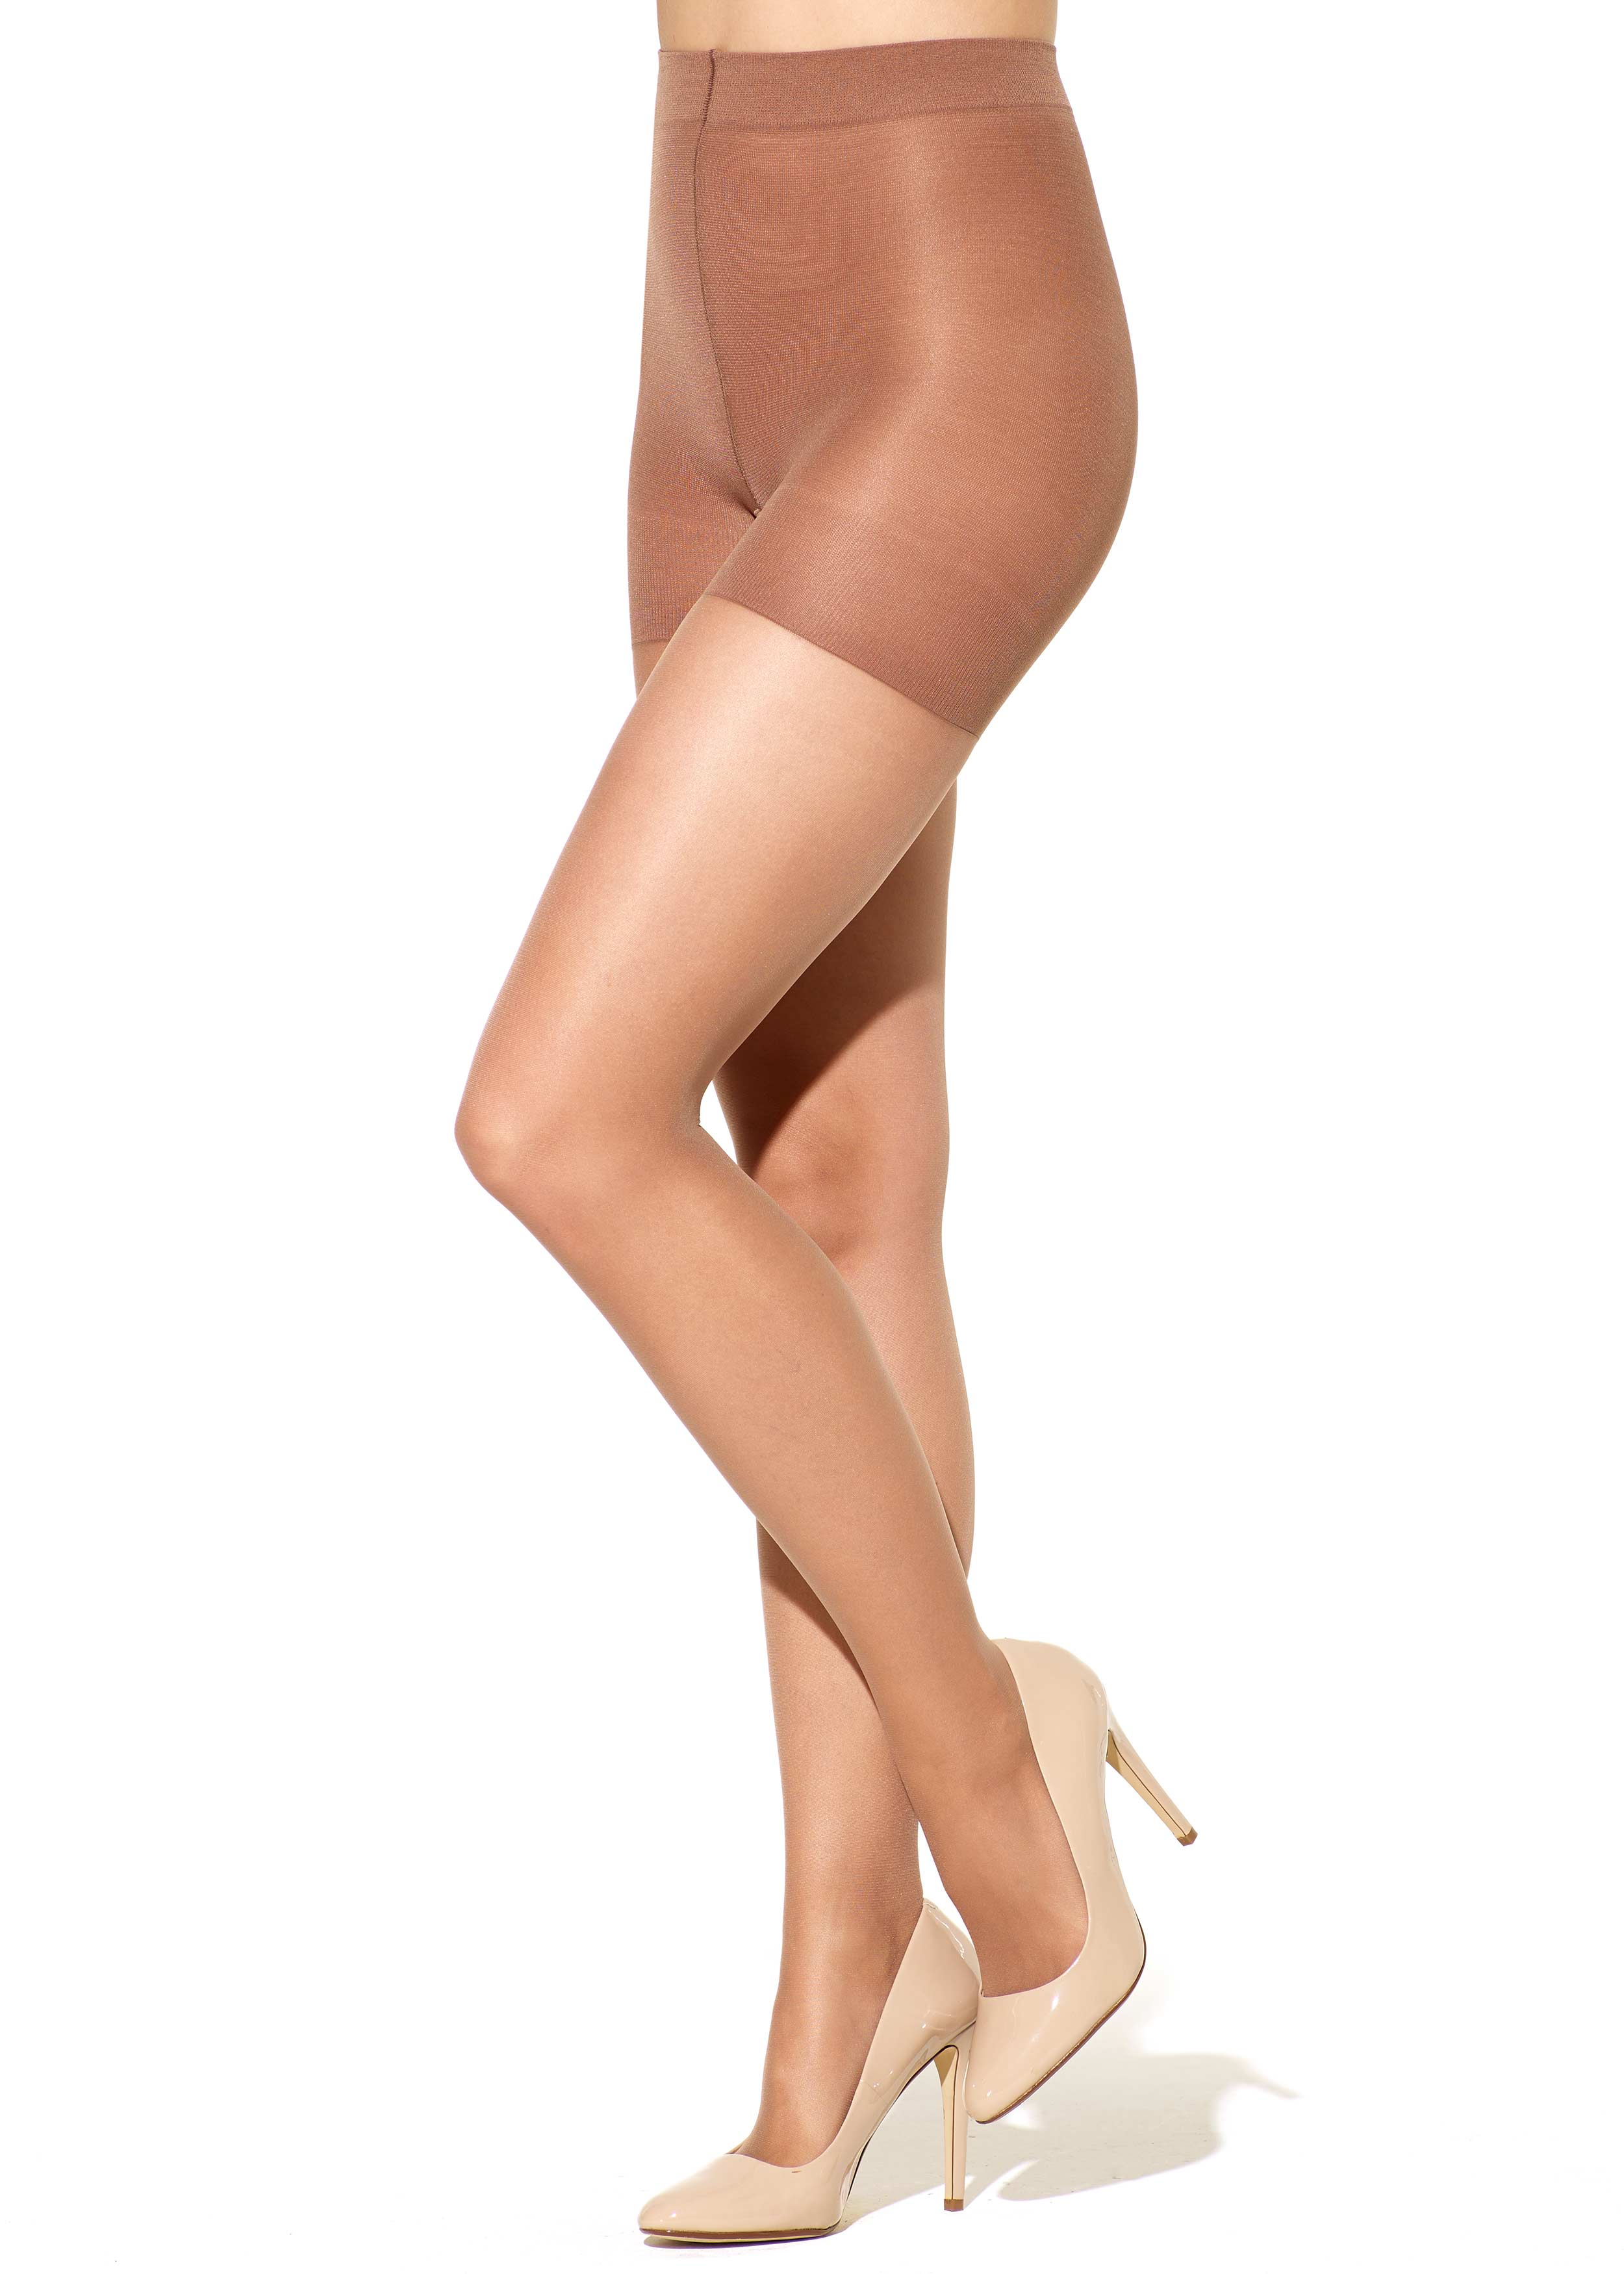 0692d66b3 Silkies Shapely Perfection Pantyhose